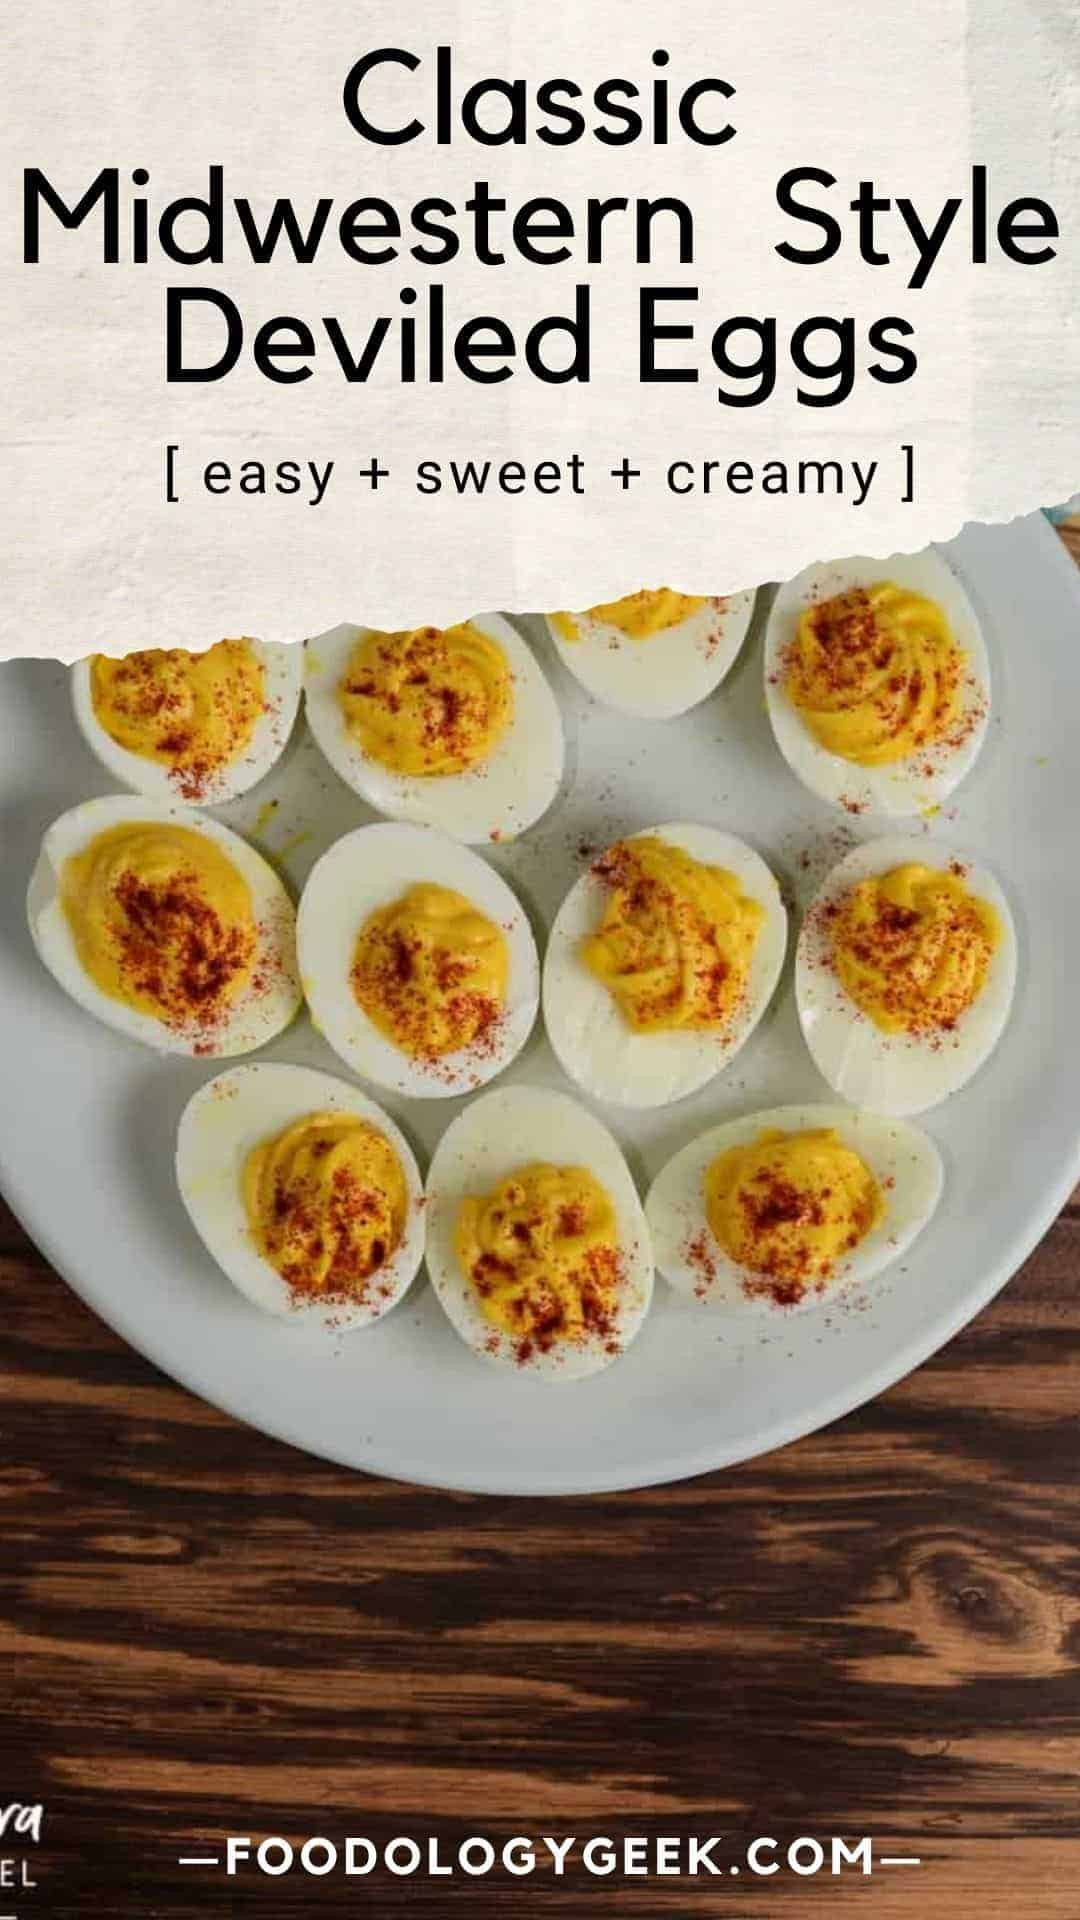 These deviled eggs are a classic! In fact, this recipe is my Grandma Sisson's original recipe. They are sweet and a little bit tangy. Family recipes are always a hit, in my book. If you're in for sticking to tradition, these deviled eggs are a clear winner.